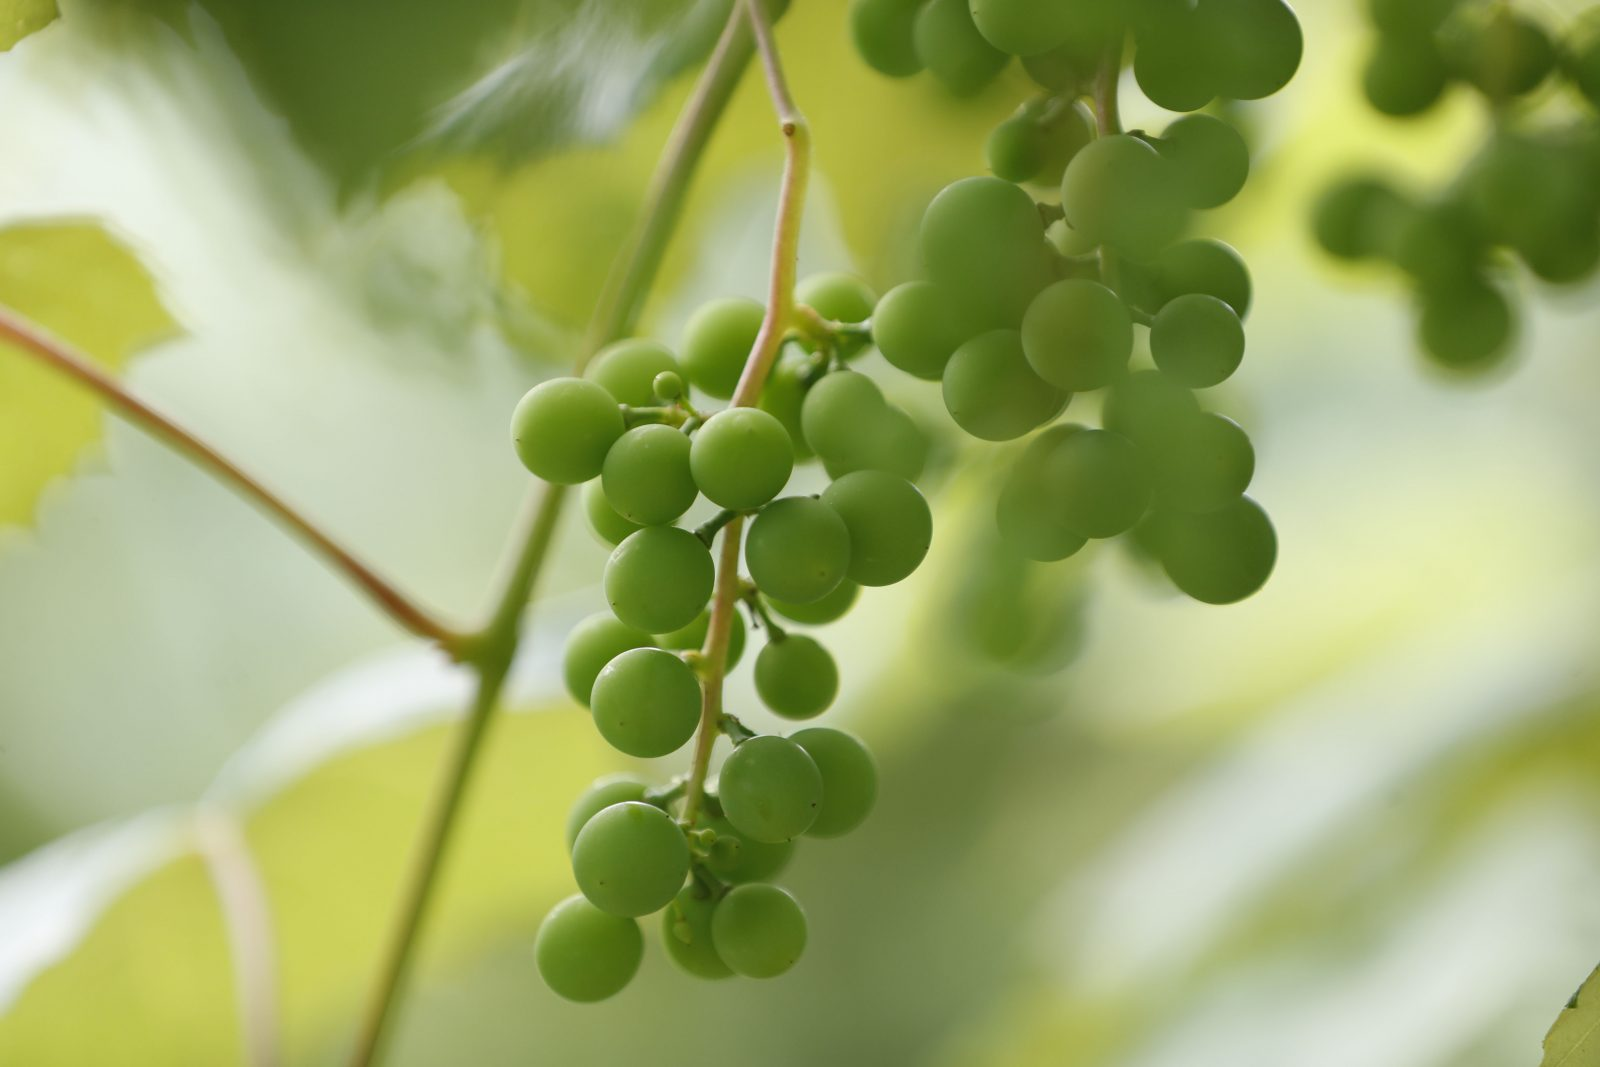 Could Lake Erie's grape belt be the next Napa Valley? – The